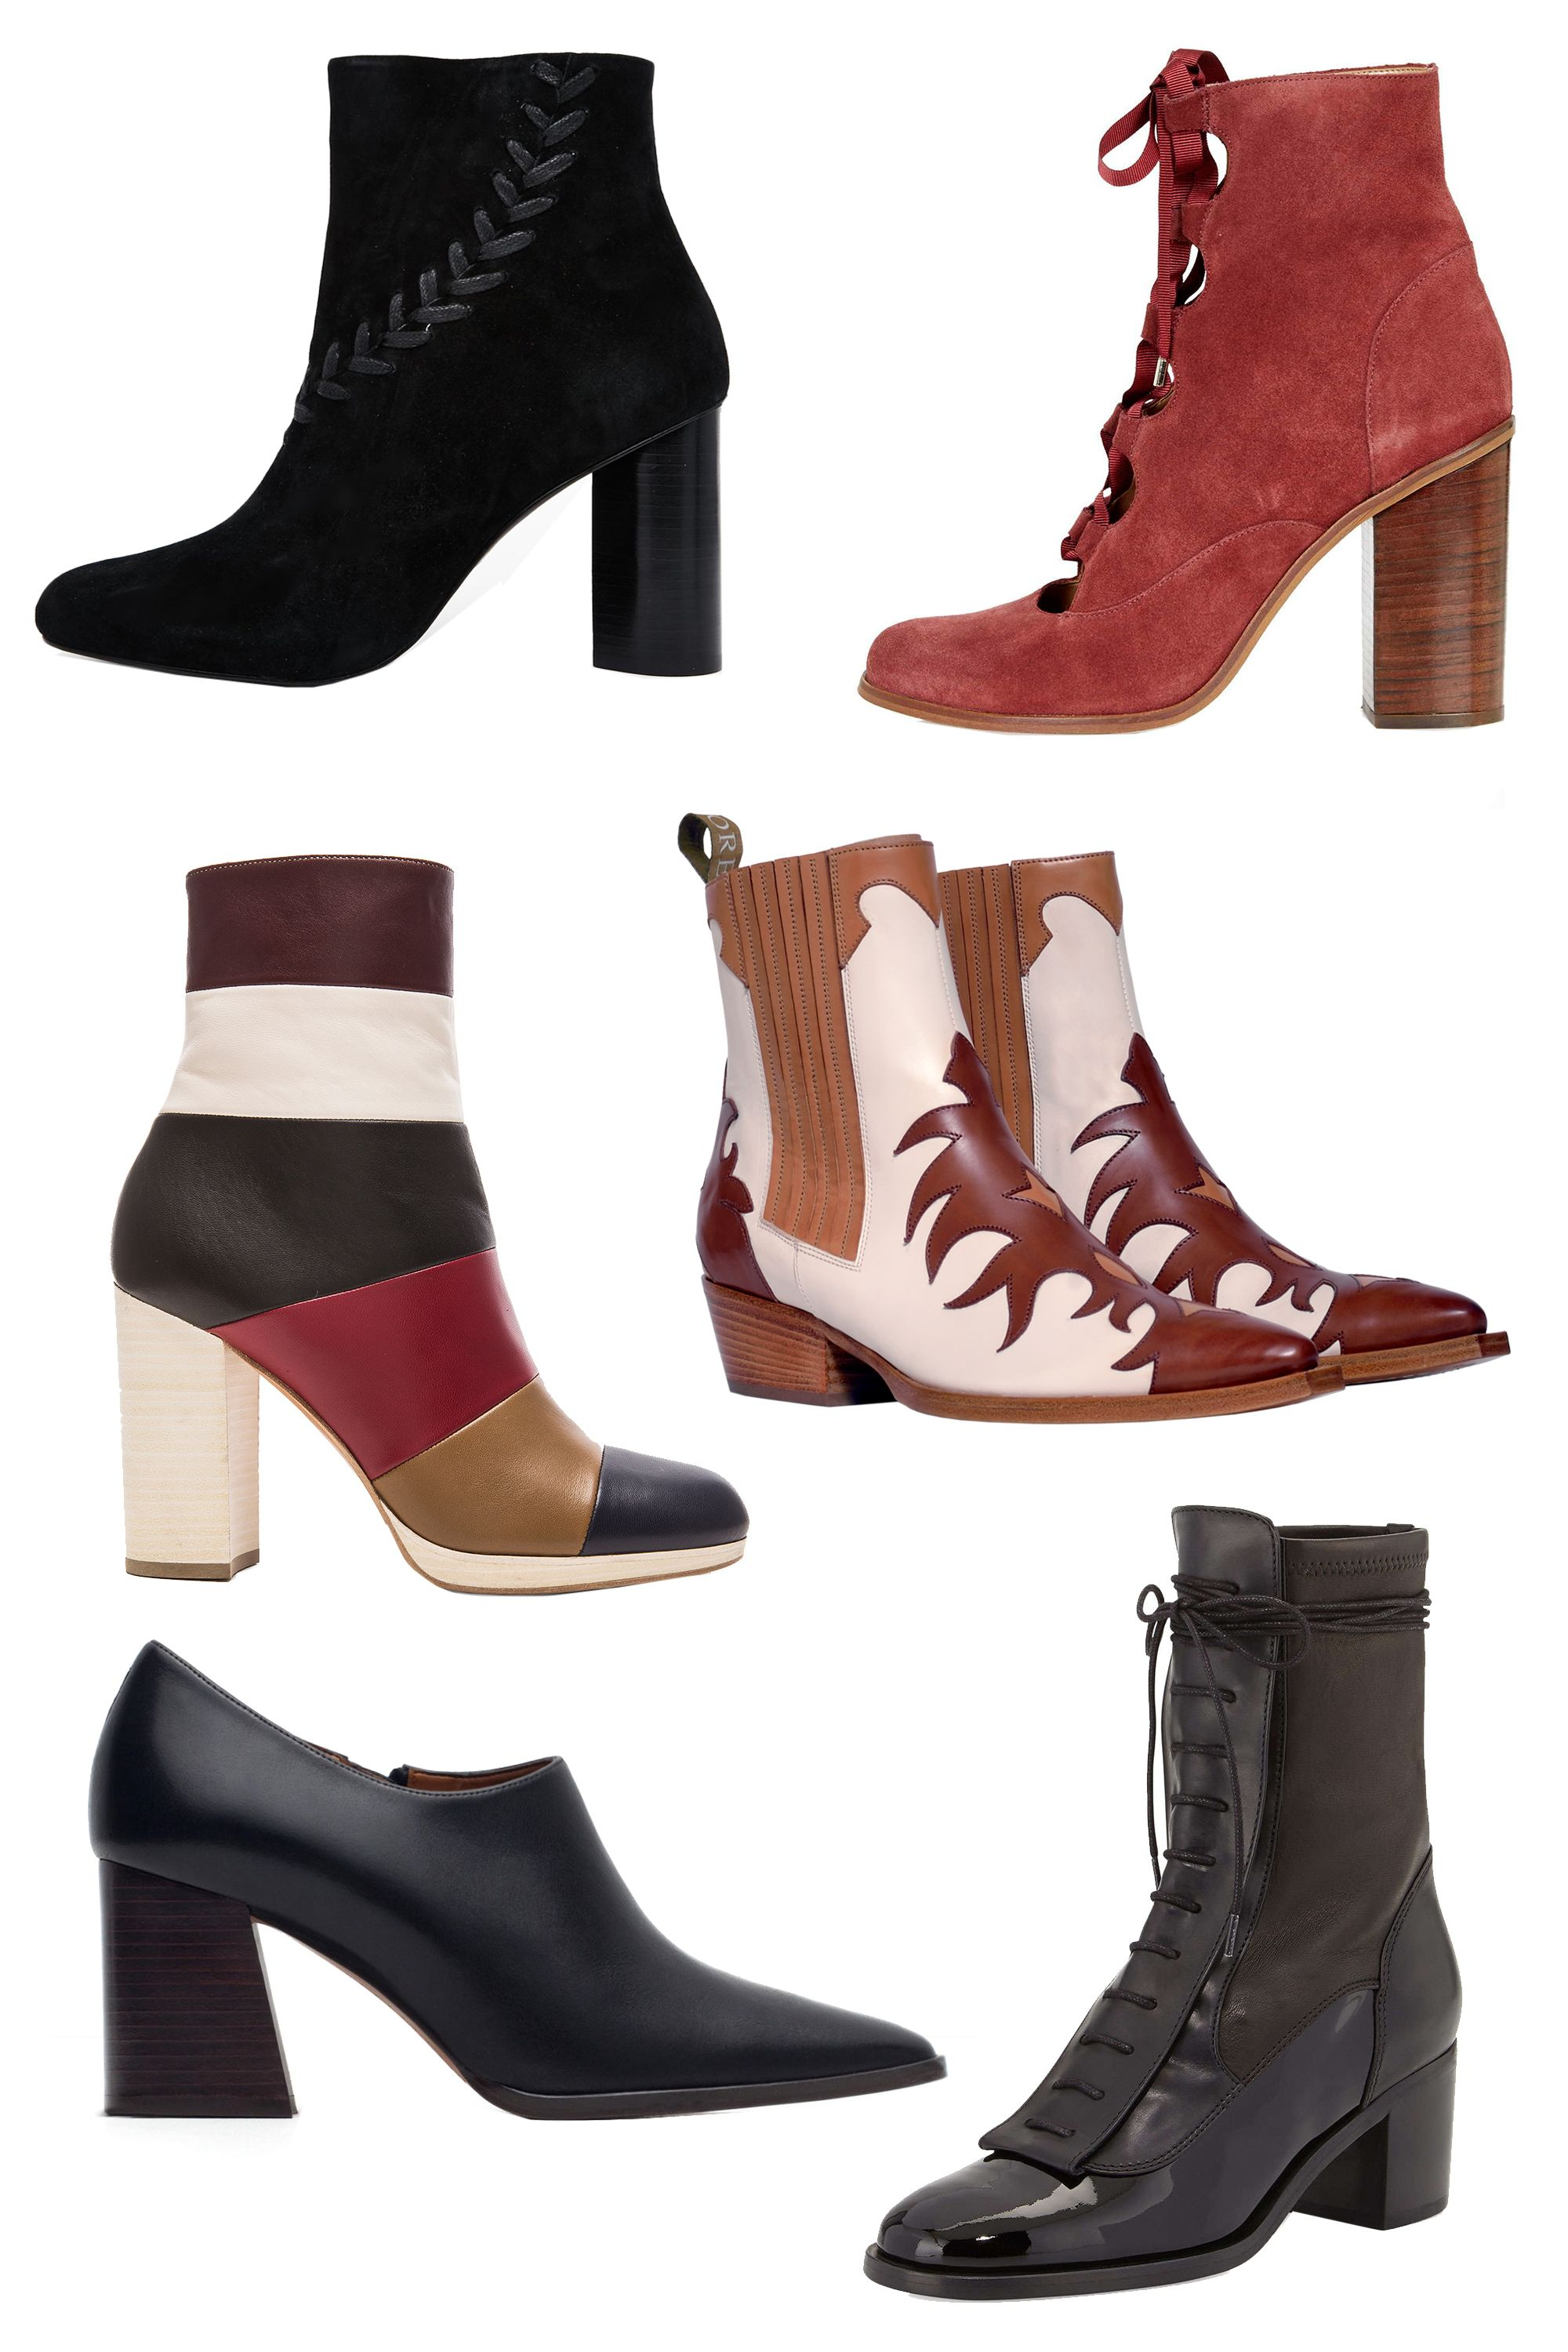 """<p class=""""MsoNormal"""">Senso Sara Heeled Ankle Boots, $302; <a href=""""http://us.asos.com/Senso/Senso-Sara-Black-Suede-Heeled-Ankle-Boots/Prod/pgeproduct.aspx?iid=5168454&cid=6455&sh=0&pge=0&pgesize=204&sort=-1&clr=Black&totalstyles=233&gridsize=3"""">asos.com</a><o:p></o:p></p><p class=""""MsoNormal"""">Topshop Magpie Ghillie Ankle Boots,<br> $160; <a href=""""http://us.topshop.com/en/tsus/product/shoes-70484/boots-70514/magpie-ghillie-ankle-boots-4583089?bi=0&ps=200"""">topshop.com</a><o:p></o:p></p><p class=""""MsoNormal"""">Valentino Multicolor Leather Booties,<br> $1,375; <a href=""""http://www.fwrd.com/product-valentino-multicolor-leather-booties-in-cognac-marine-scarlet/VENT-WZ201/?d=Womens&srcType=plpaltimage&list=plp-list-6"""">fwrd.com</a><o:p></o:p></p><p class=""""MsoNormal"""">Sartore Western Boots, €339; <a href=""""http://www.sartore.fr/eshop/femme/boots/sr1771-e15.html?___SID=U#92=207&137=33&135=9"""">sartore.fr</a><o:p></o:p></p><p class=""""MsoNormal"""">Zara Leather Ankle Boot Style Shoes,<br> $119; <a href=""""http://www.zara.com/us/en/woman/shoes/view-all/leather-ankle-boot-style-shoes-c734142p2901038.html"""">zara.com</a><o:p></o:p></p><p class=""""MsoNormal"""">Laurence Decade Inde Lace-Up Leather<br> Ankle Boot, $1,325; <a href=""""http://www.neimanmarcus.com/Laurence-Dacade-Inde-Lace-Up-Leather-Ankle-Boot-Black-Laurence-Dacade/prod179660007_cat46430759__/p.prod?icid=&searchType=EndecaDrivenCat&rte=%2Fcategory.jsp%3FitemId%3Dcat46430759%26pageSize%3D120%26No%3D0%26refinements%3D&eItemId=prod179660007&cmCat=product"""">neimanmarcus.com</a><span></span></p>"""